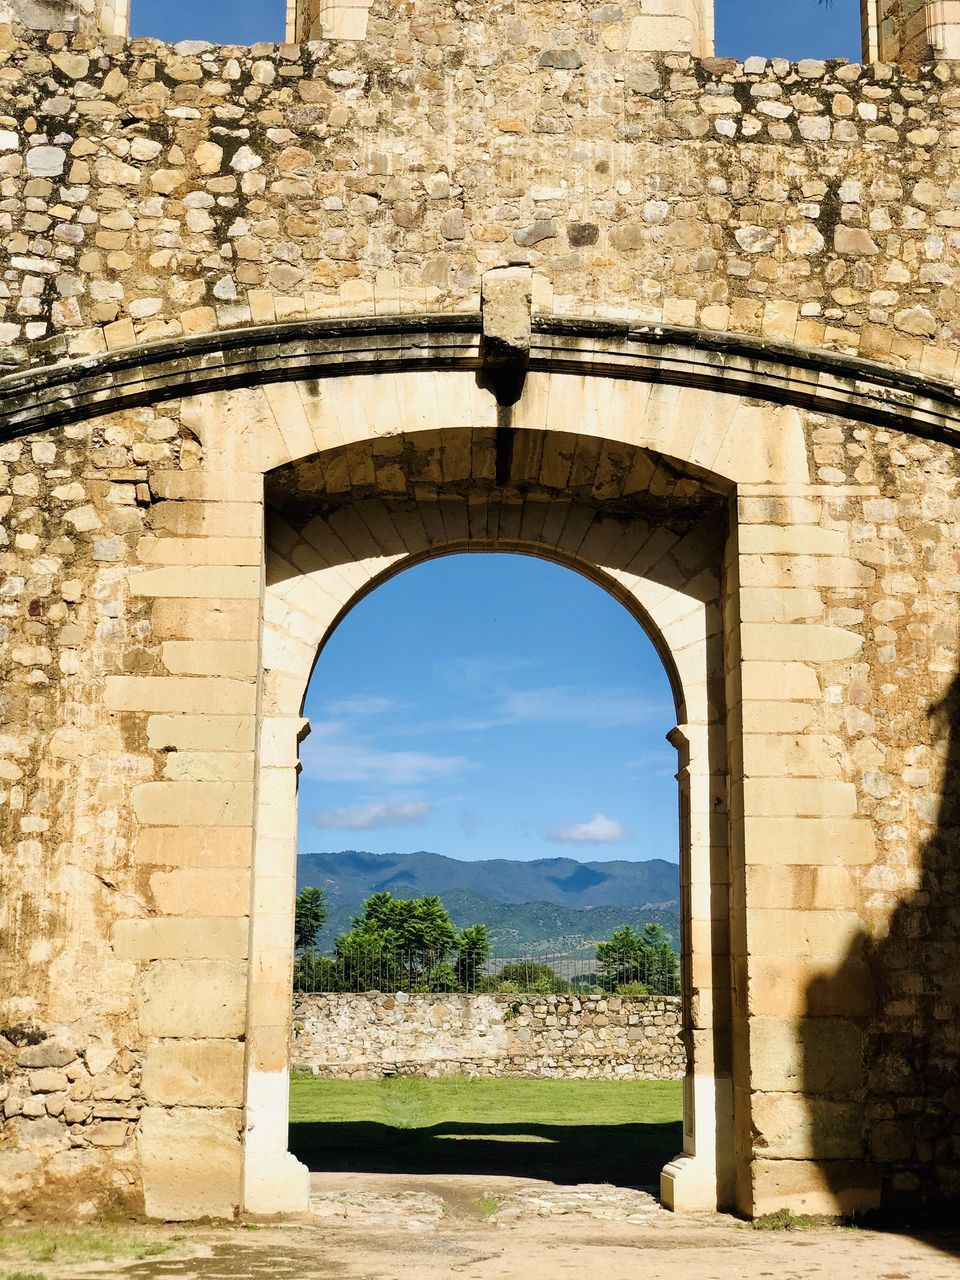 architecture, built structure, arch, building exterior, history, the past, no people, day, nature, stone wall, sky, sunlight, wall, travel destinations, building, old, window, plant, wall - building feature, outdoors, stone material, arched